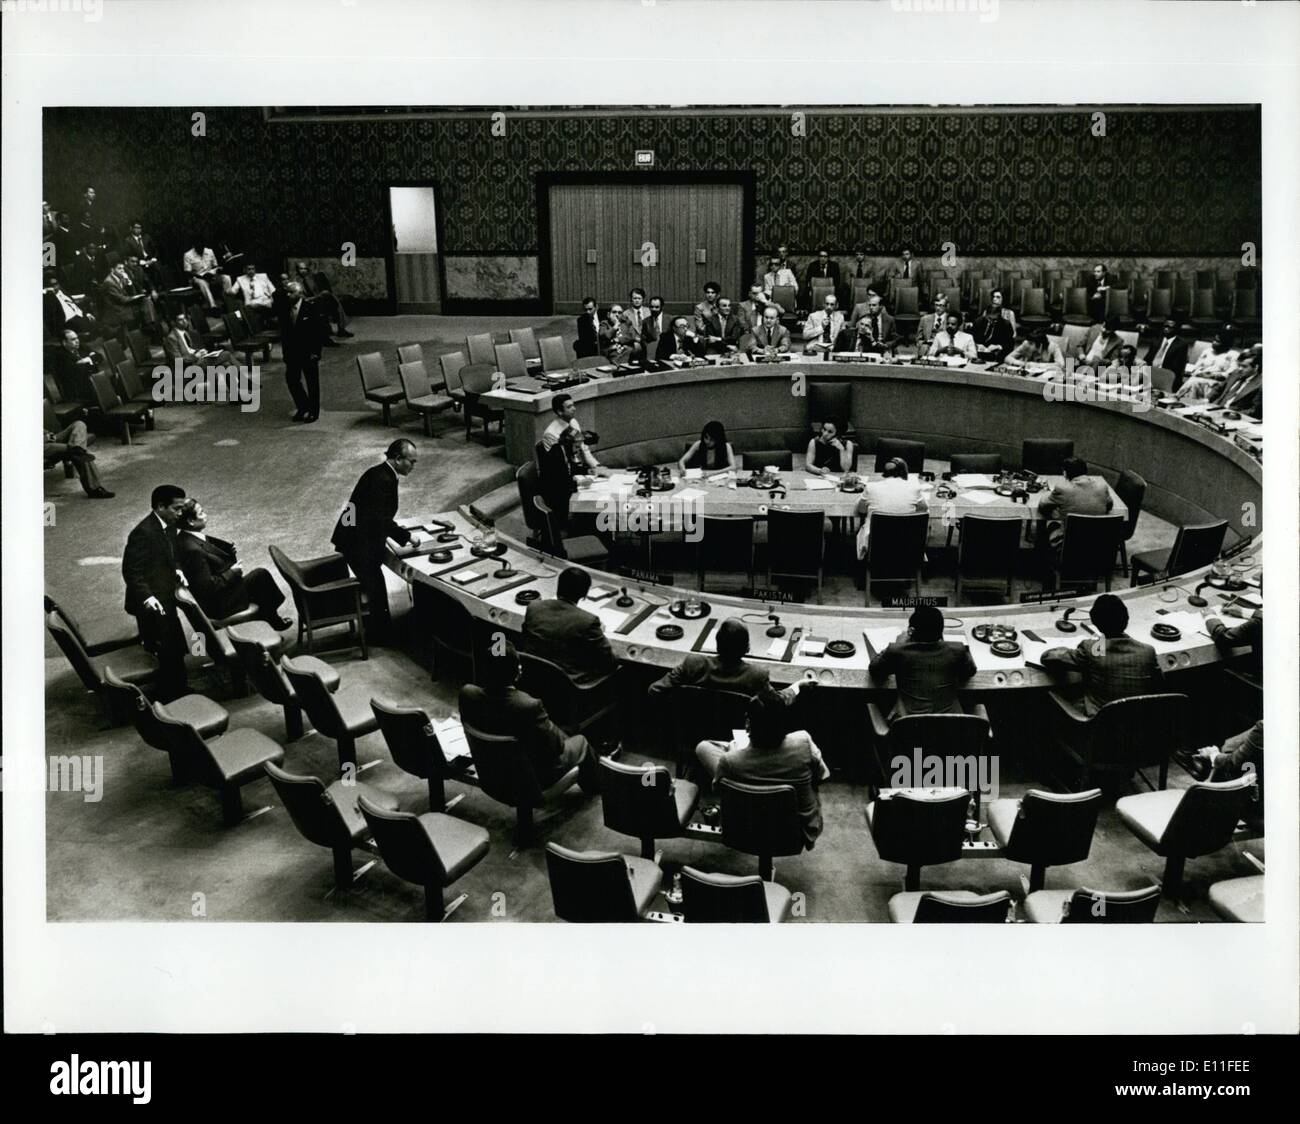 Jul. 07, 1977 - Perm. Observer of Vietnam Dinhi Ba Thi being seated of the UN Security Council Table after the vote ad Vietnam. - Stock Image